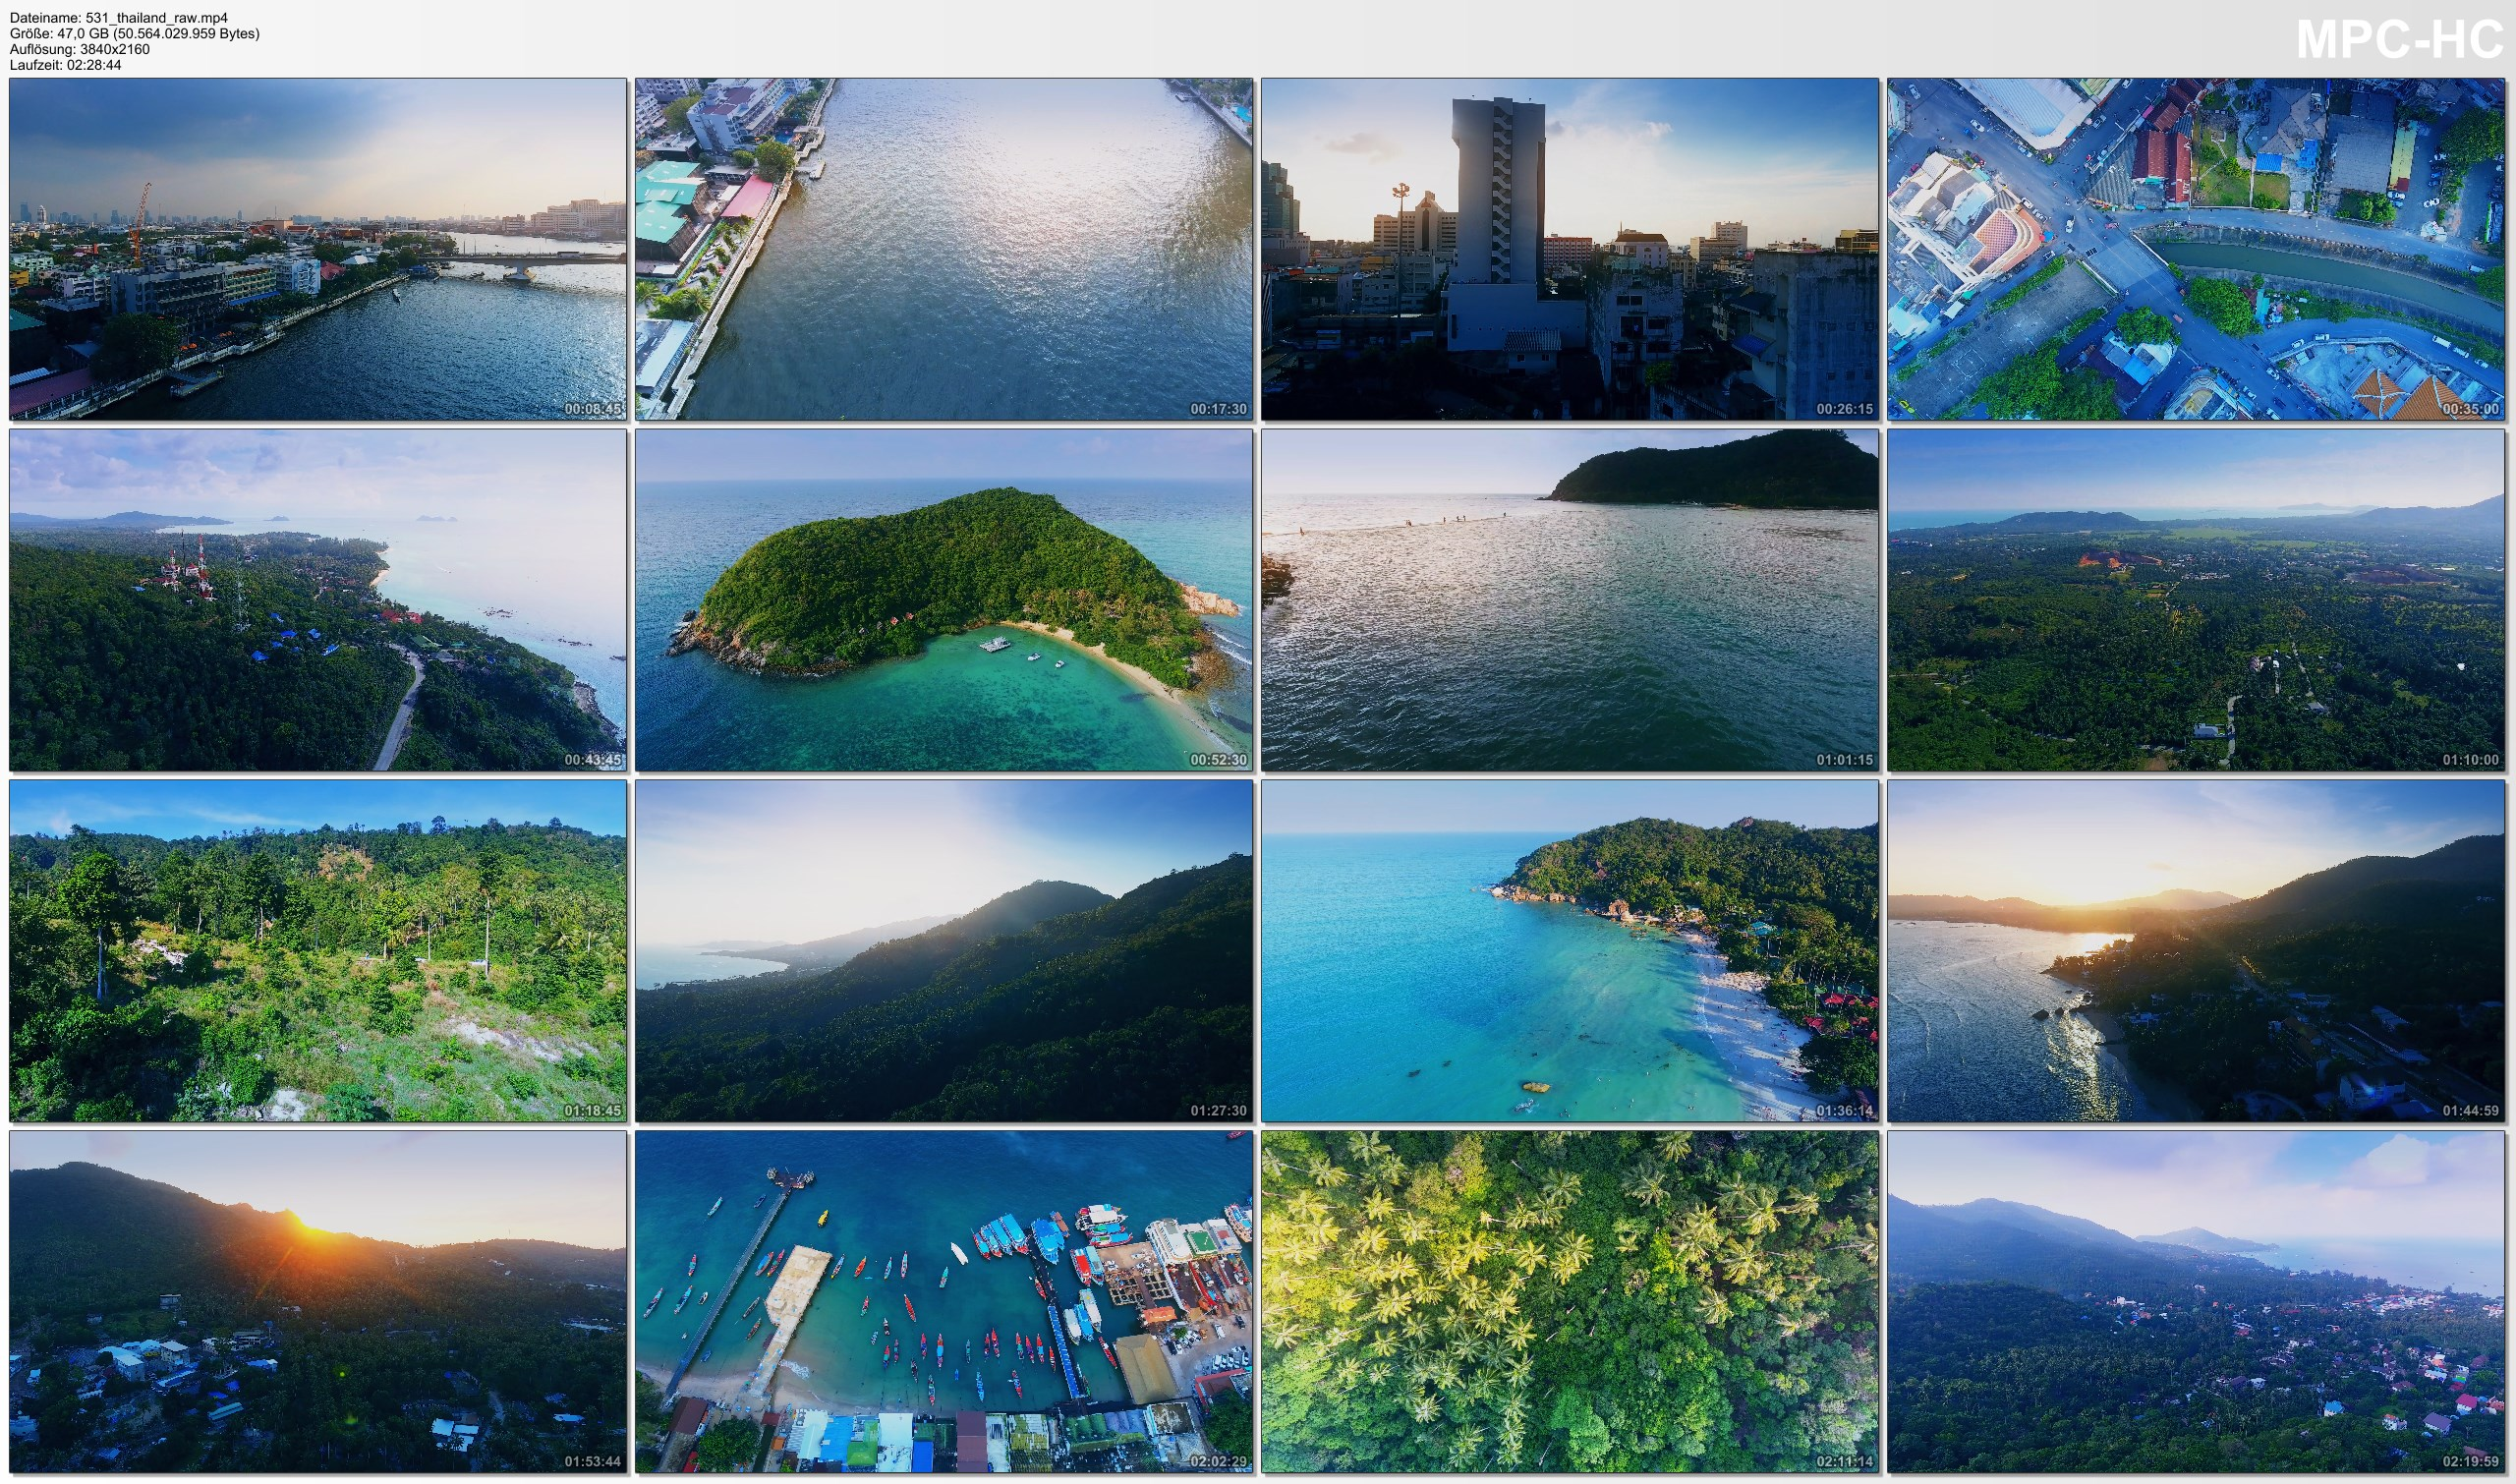 Drone Pictures from Video 【4K】Drone RAW Footage | This is THAILAND 2020 | Bangkok | Koh Samui and More | UltraHD Stock Video